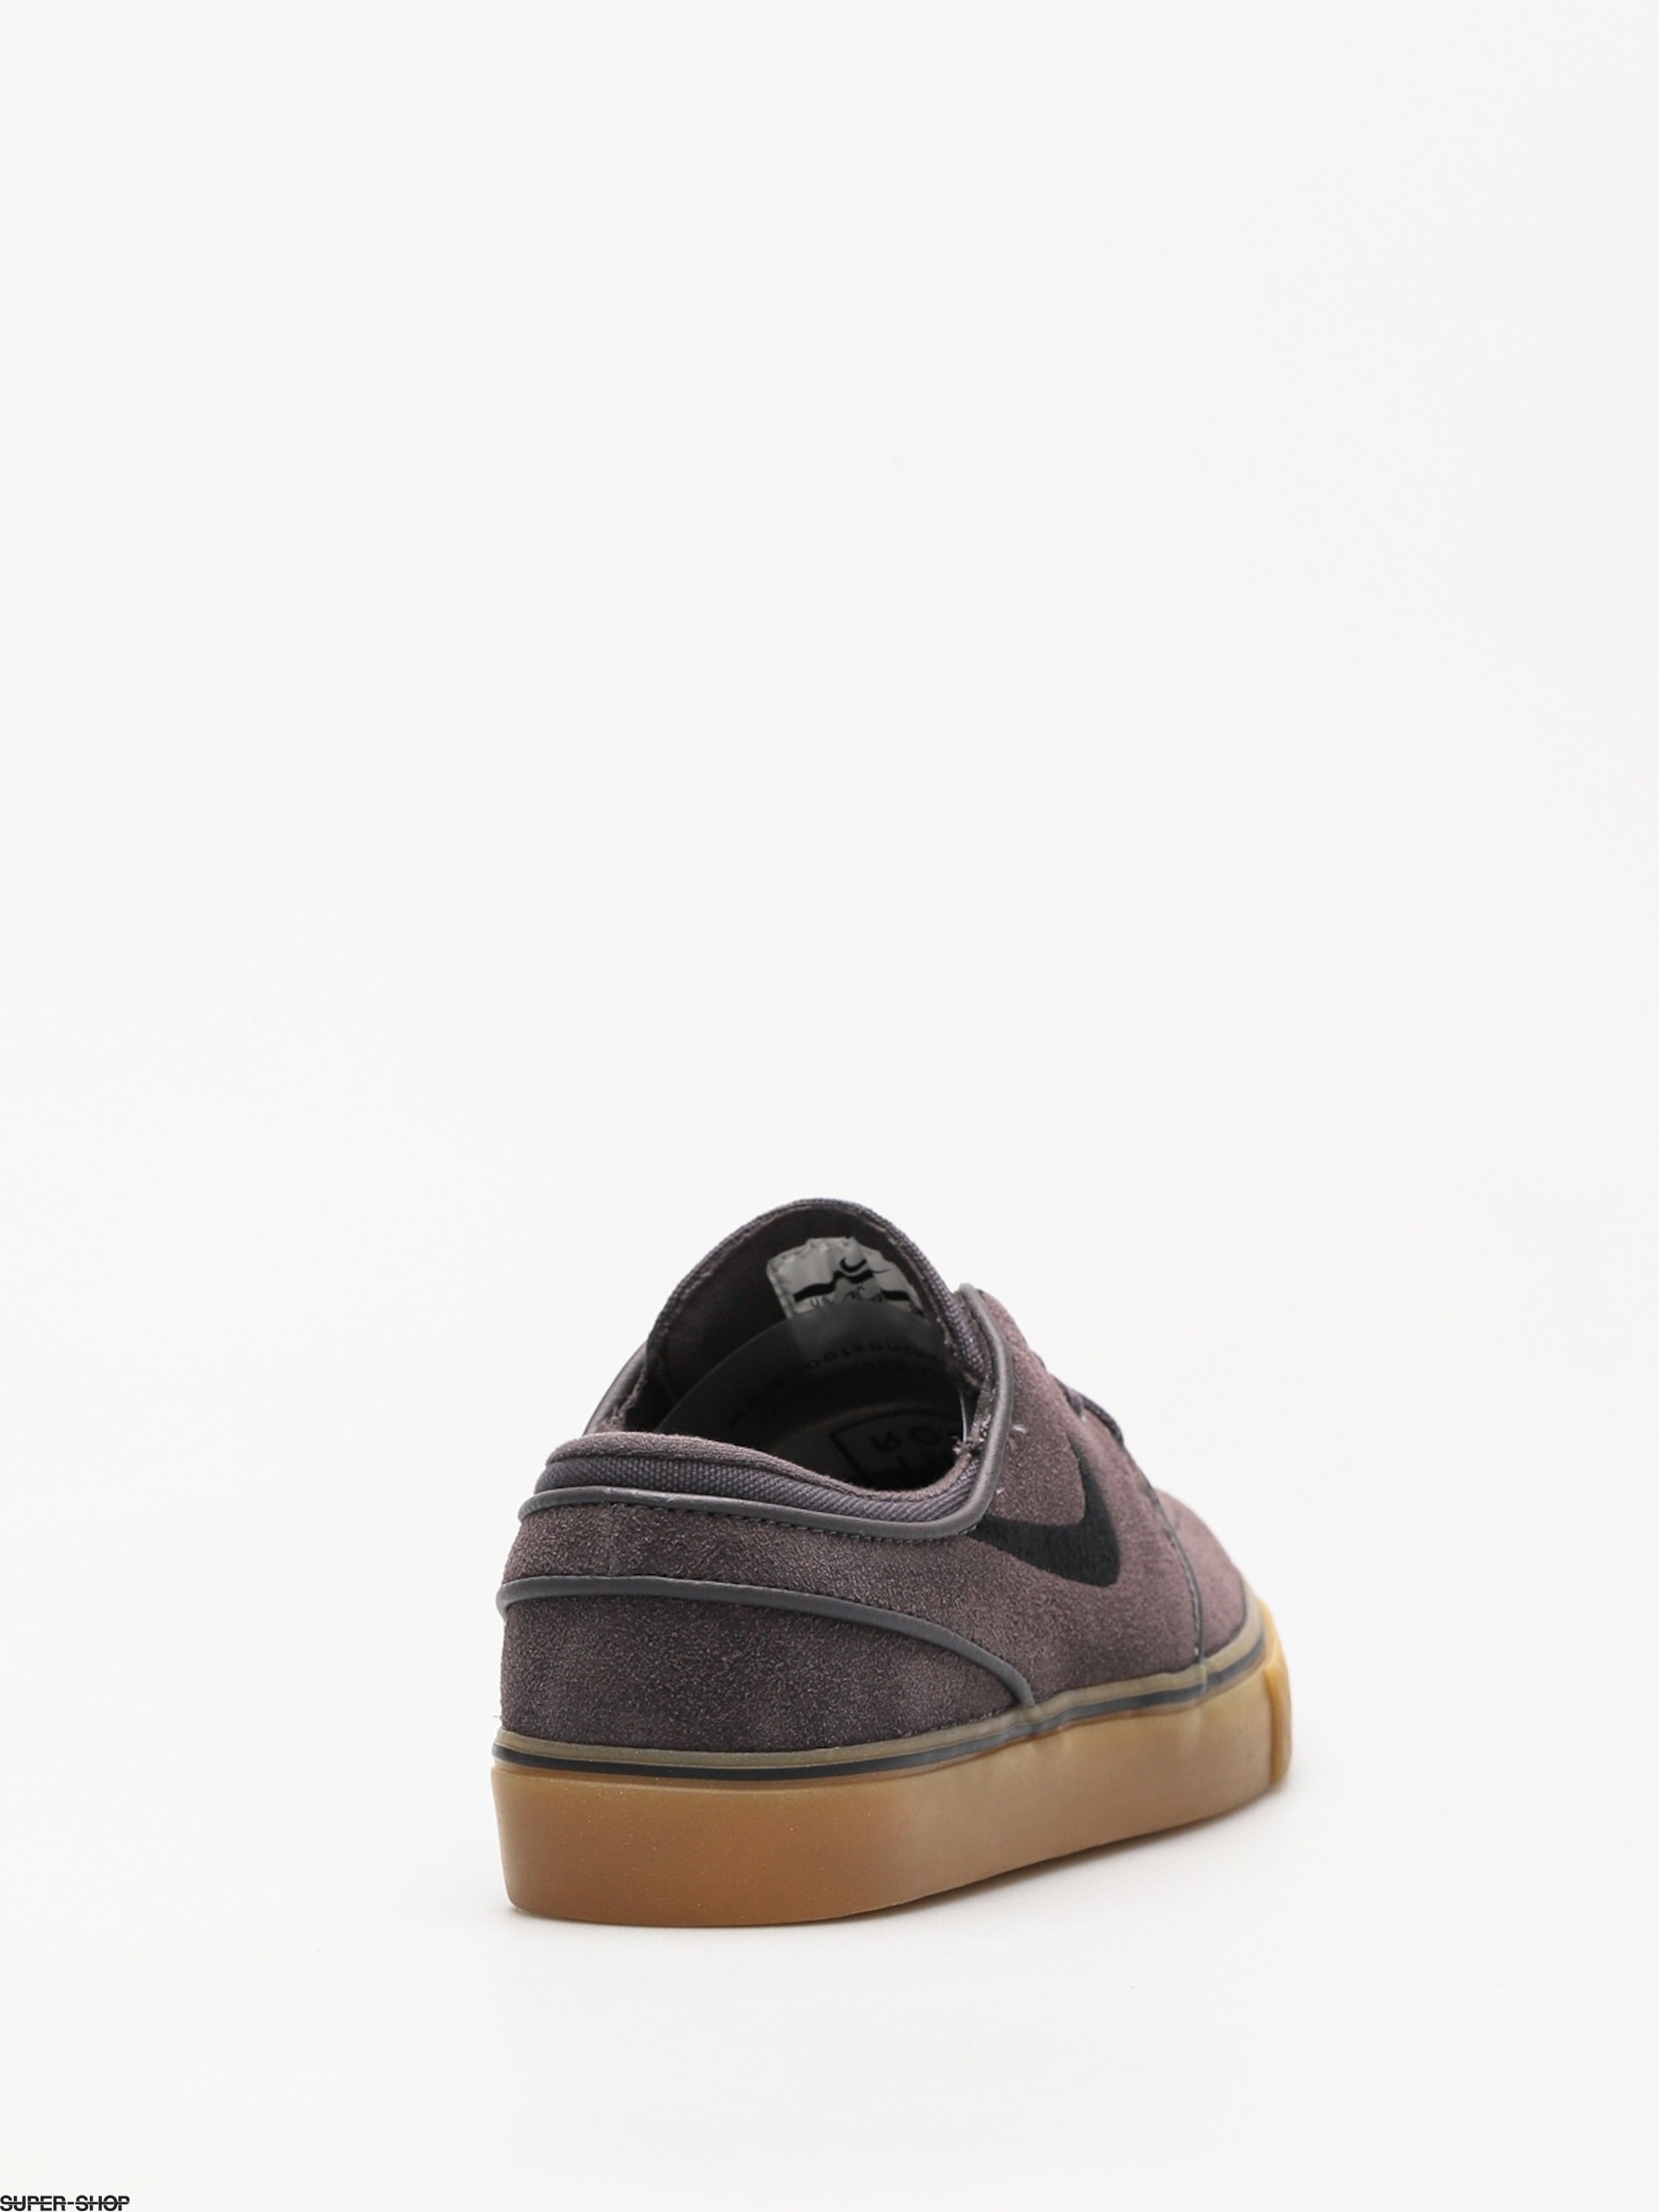 Fraseología Colega agua  Nike SB Shoes Zoom Stefan Janoski (thunder grey/black gum light brown)